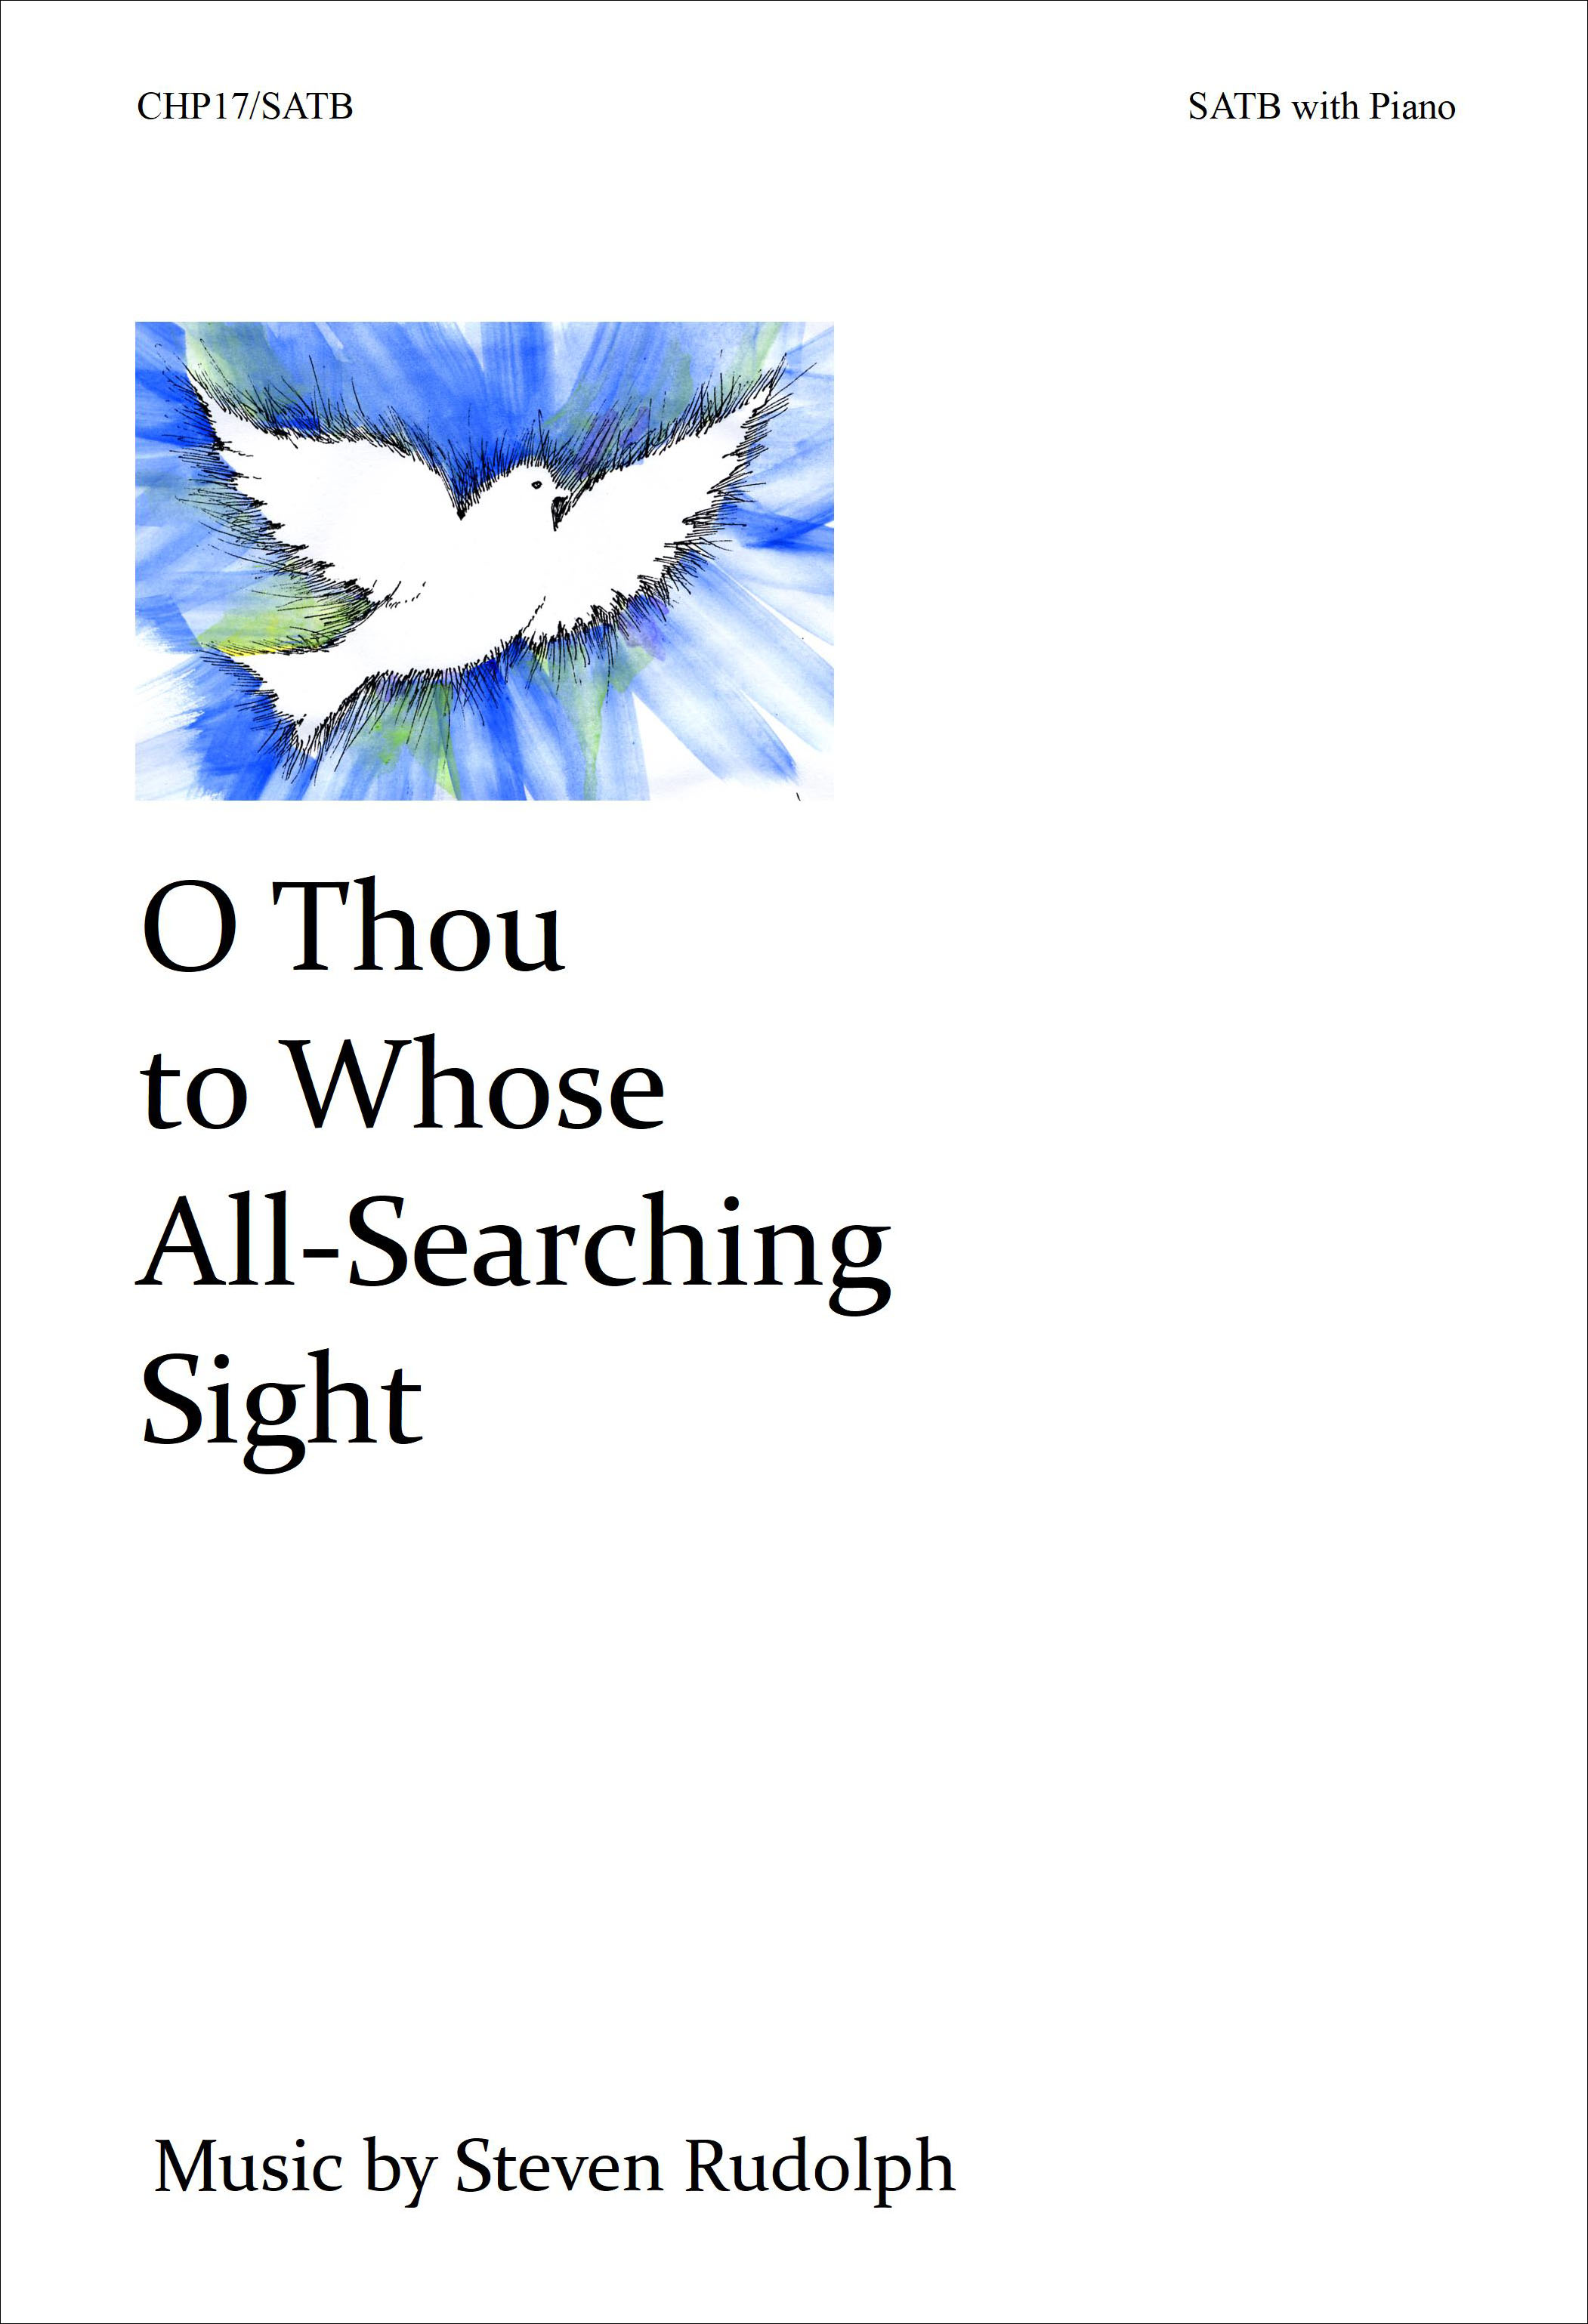 O Thou to Whose All-Searching Sight